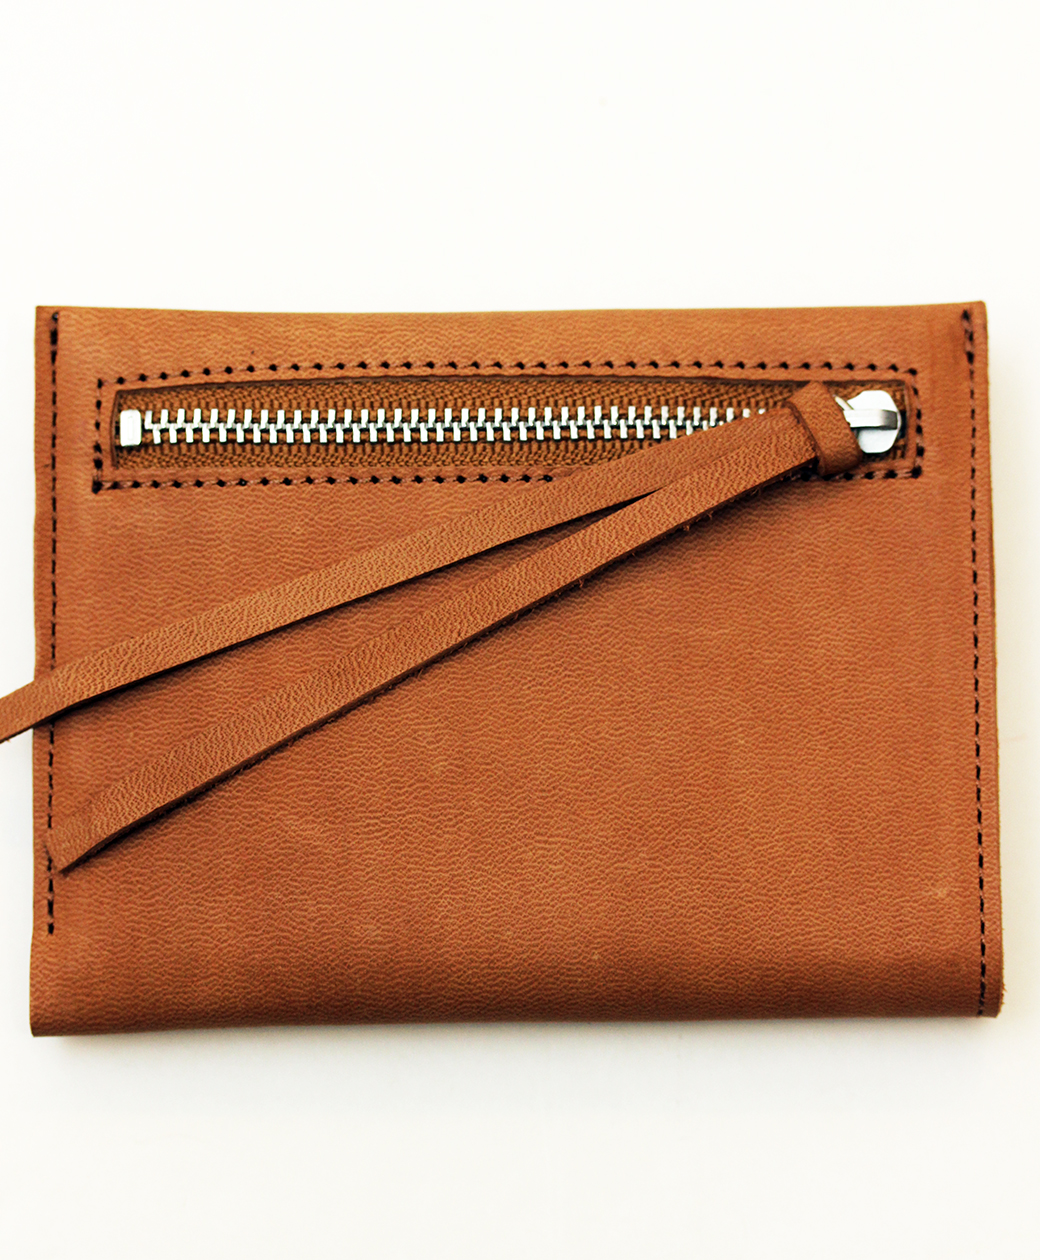 hobo HORSE LEATHER BIFOLD WALLET(BROWN)